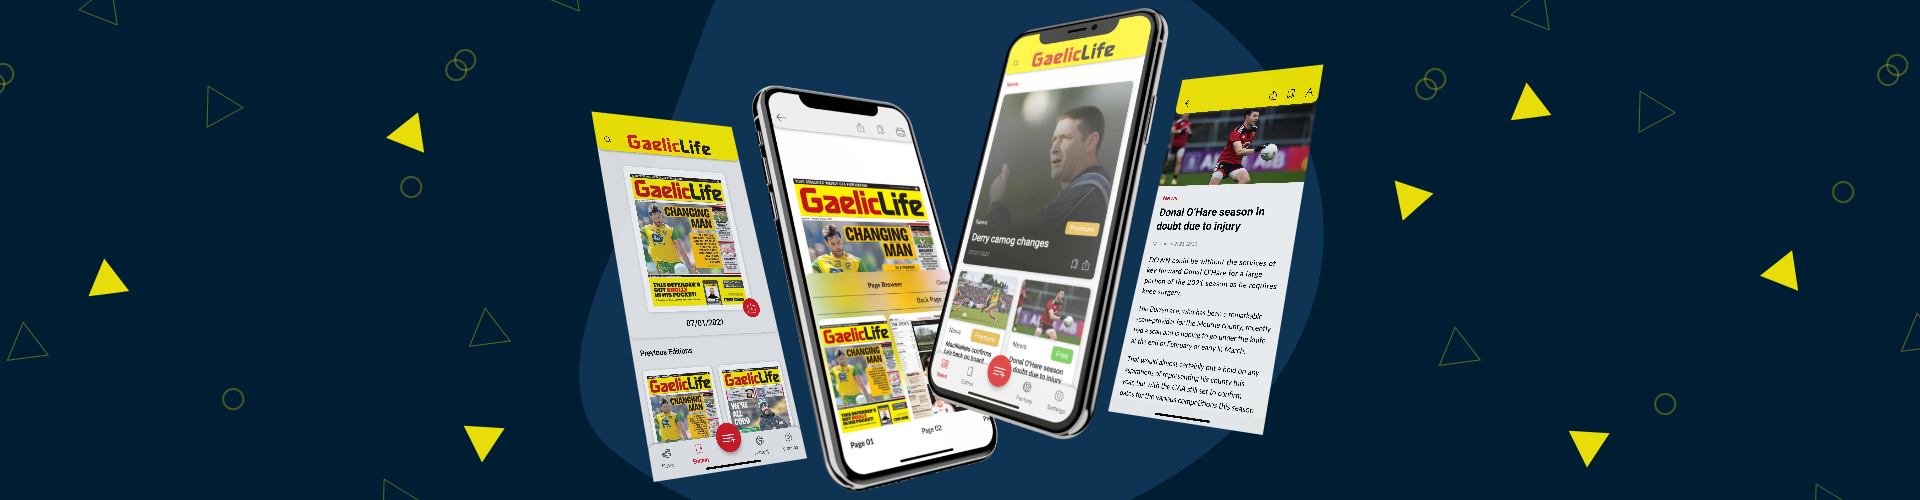 Header image of PageSuite Launches New 2 in 1 App for Gaelic Life